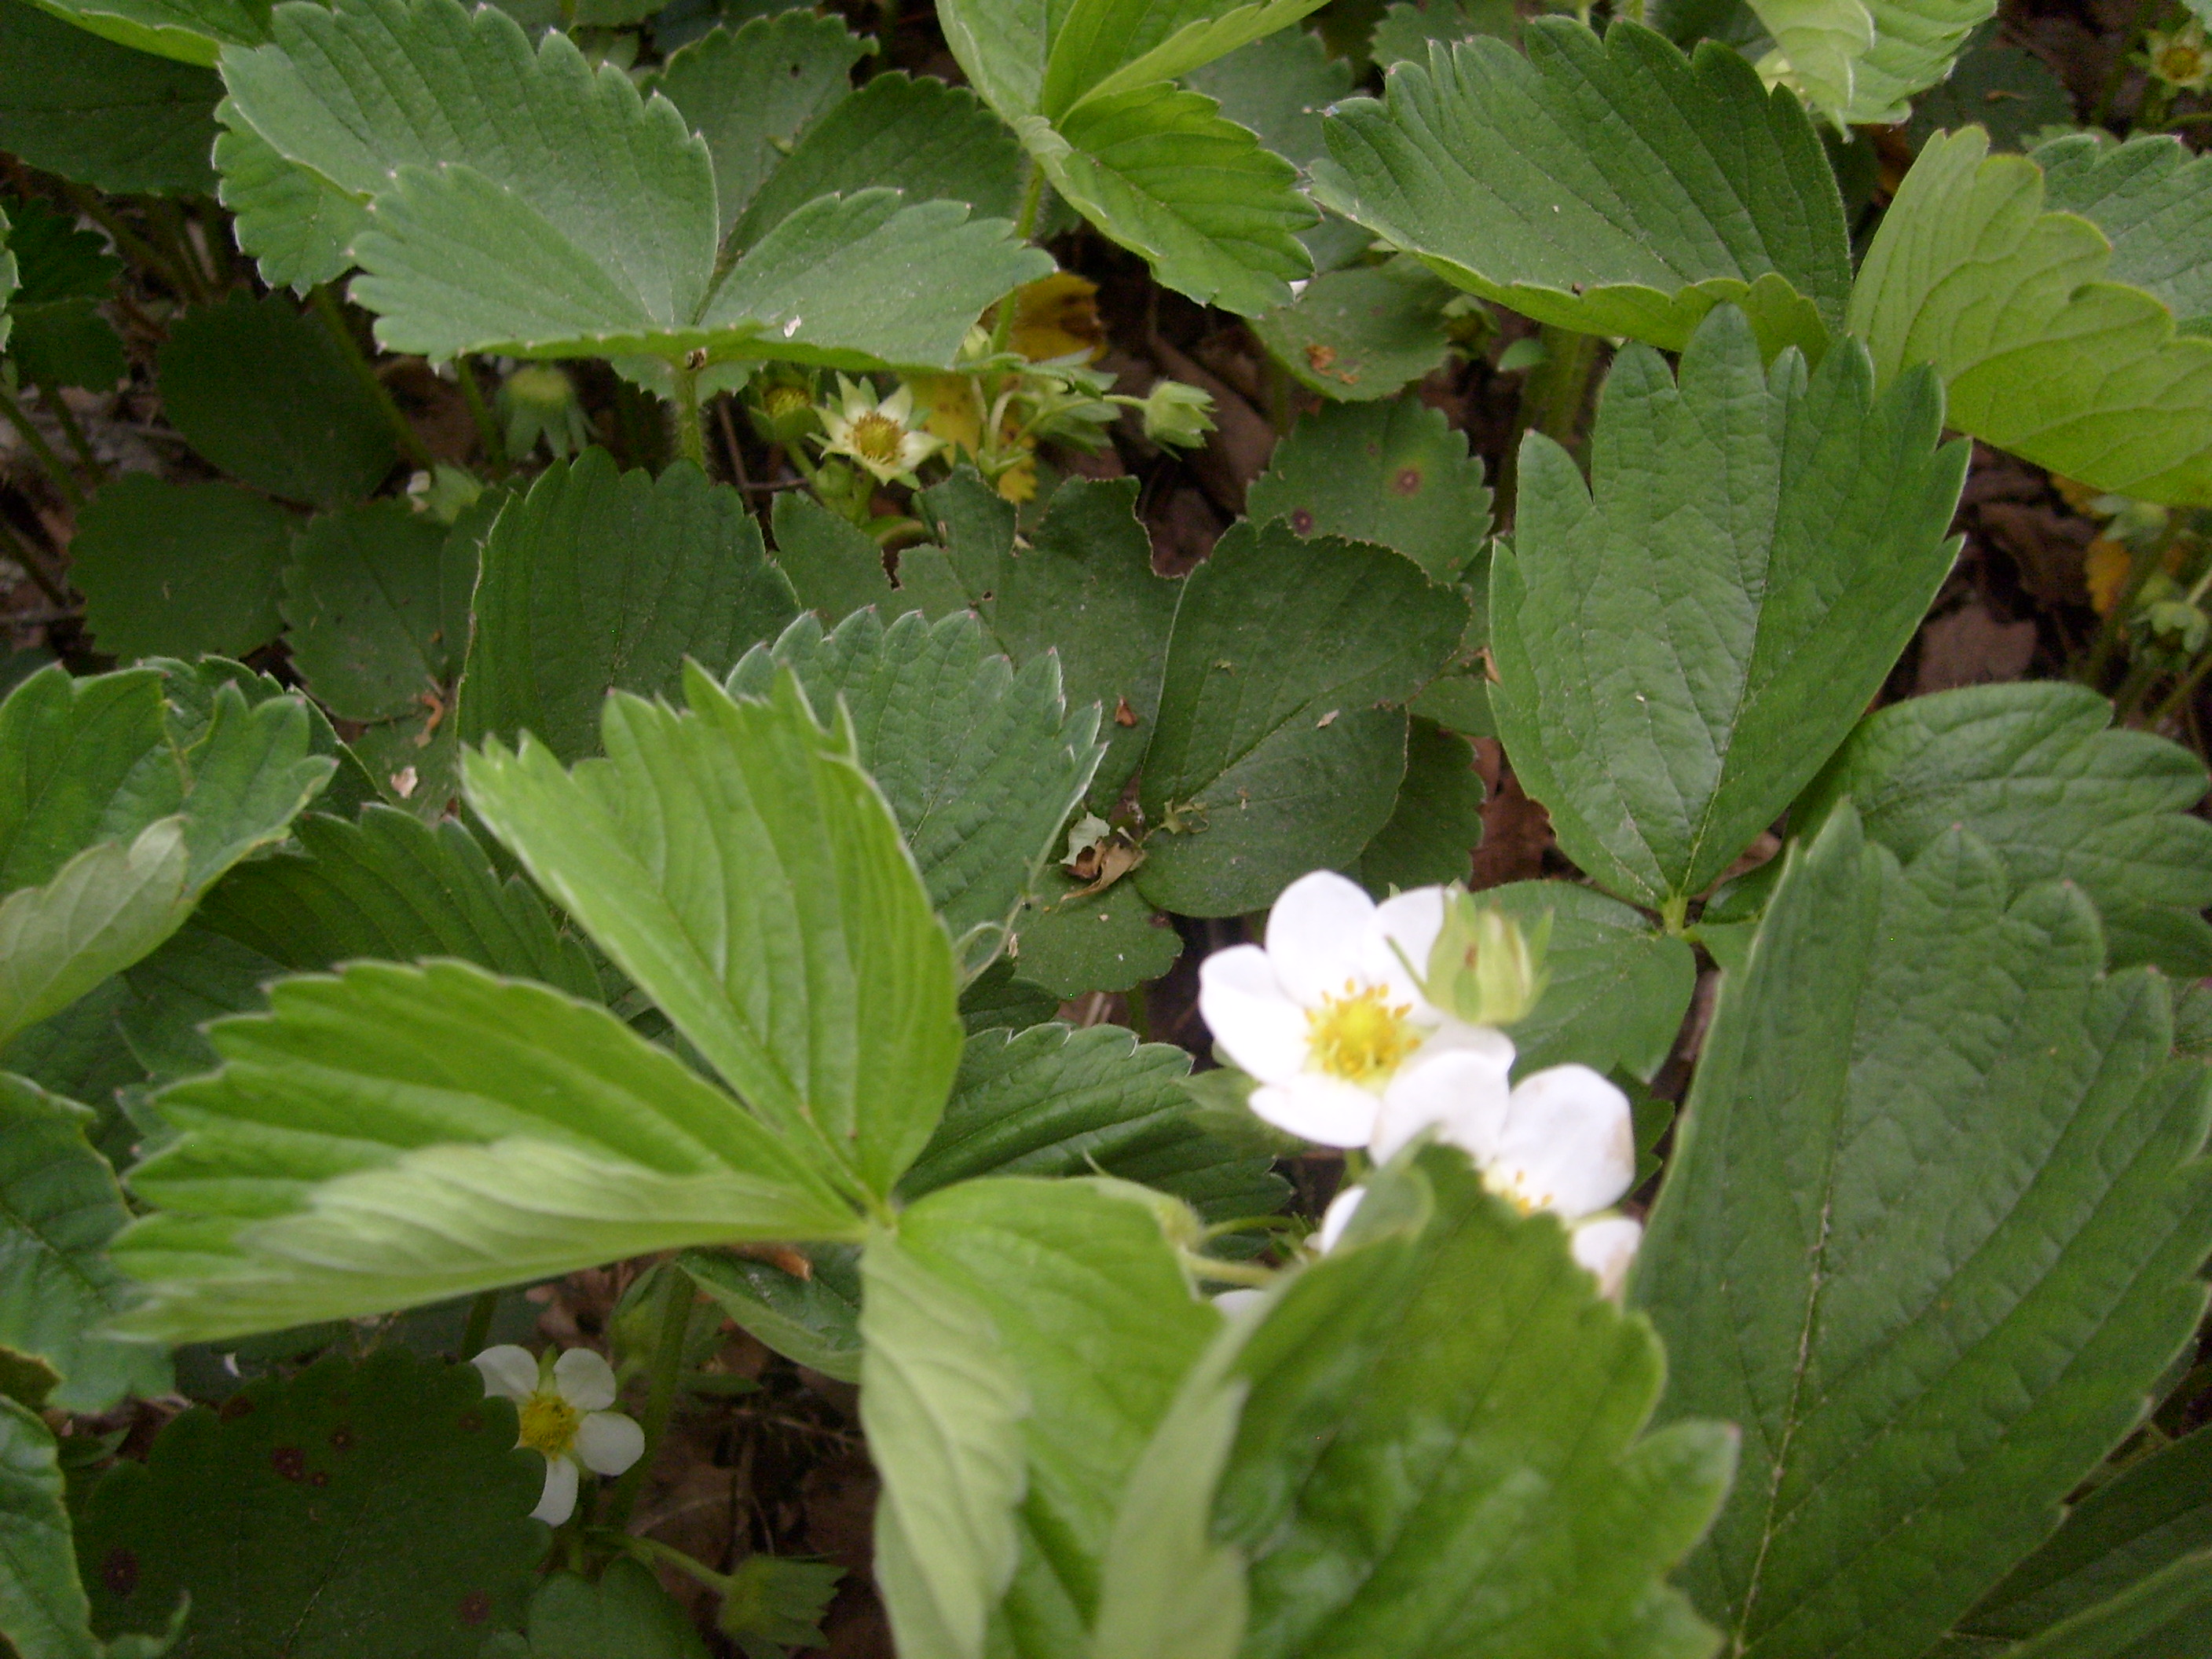 Strawberry blossom, Memorial Day